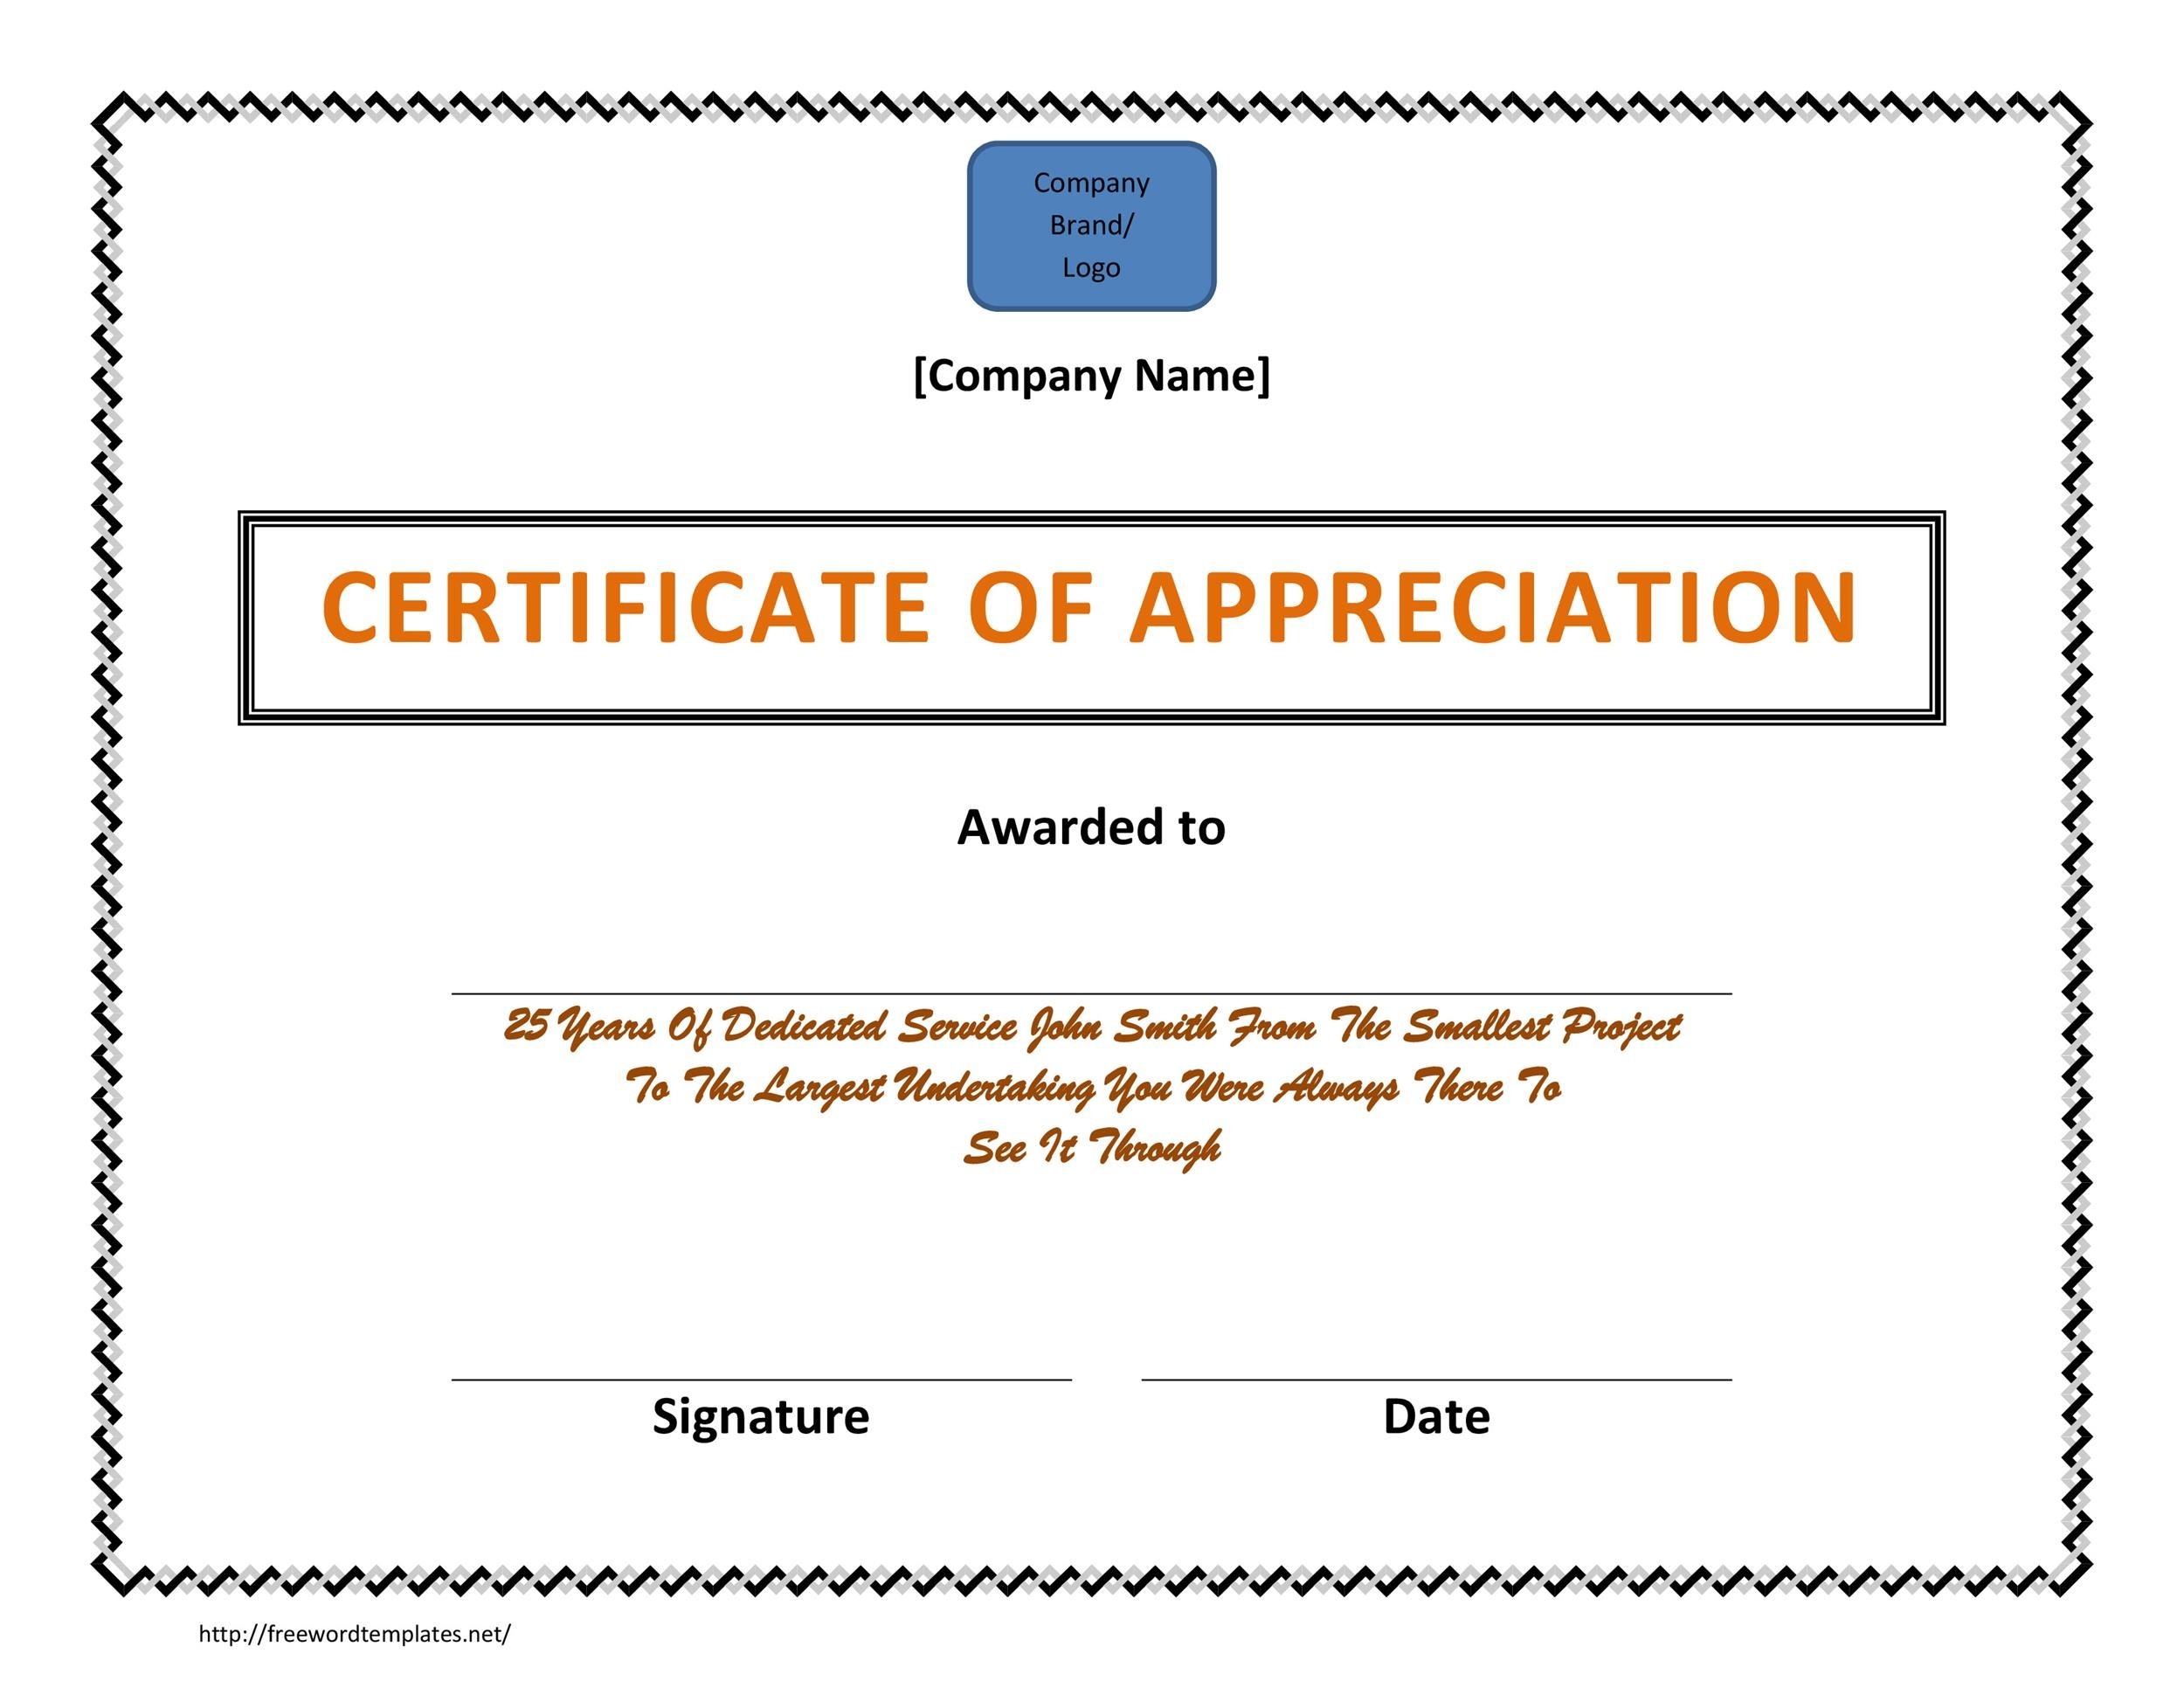 30 free certificate of appreciation templates and letters printable certificate of appreciation 05 yelopaper Images